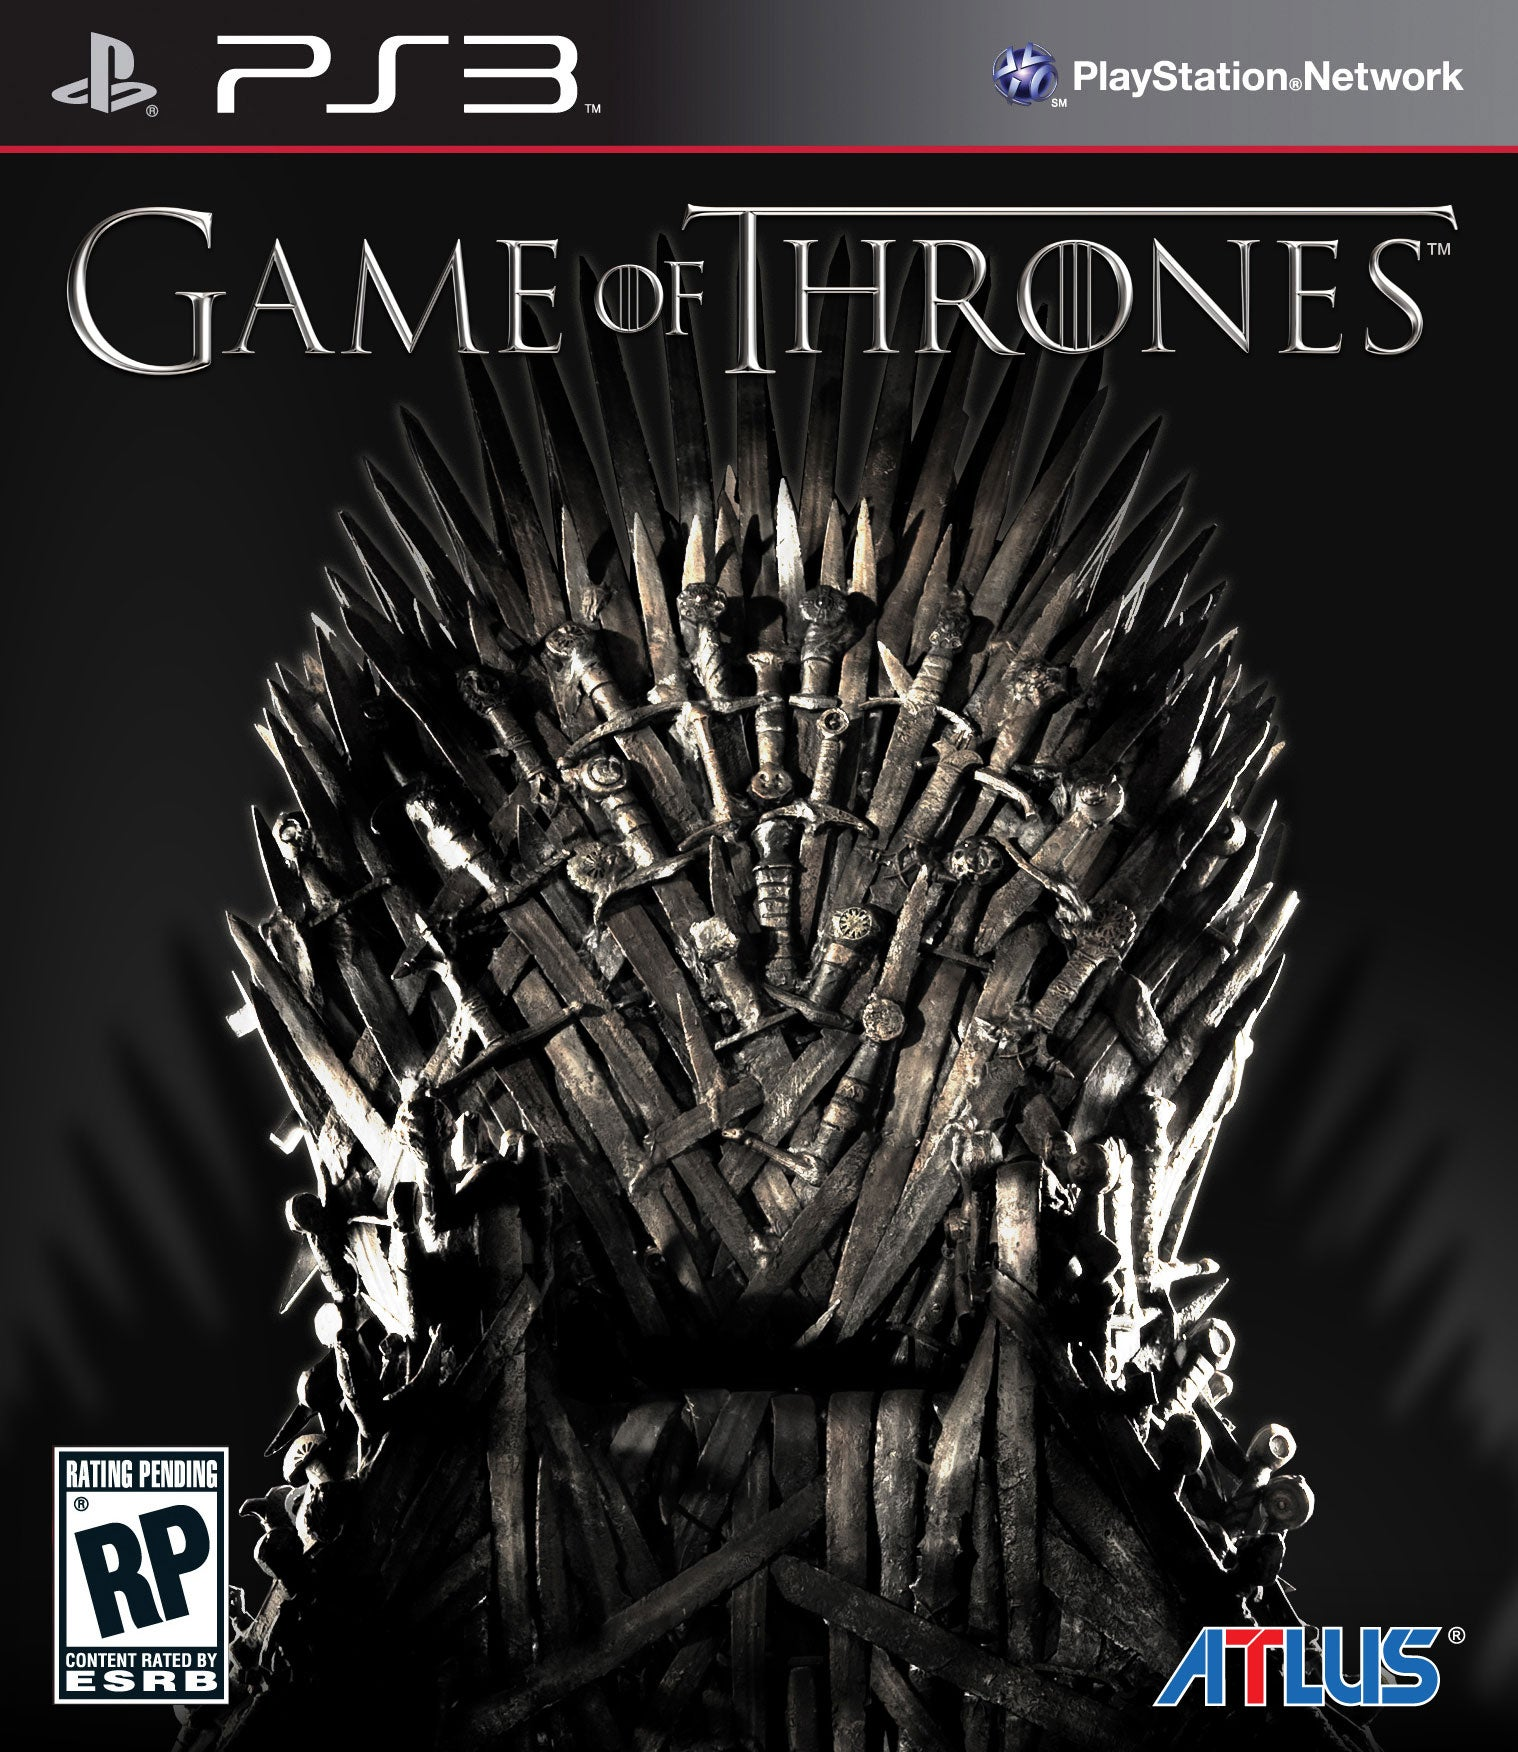 PS3 - Game of Thrones